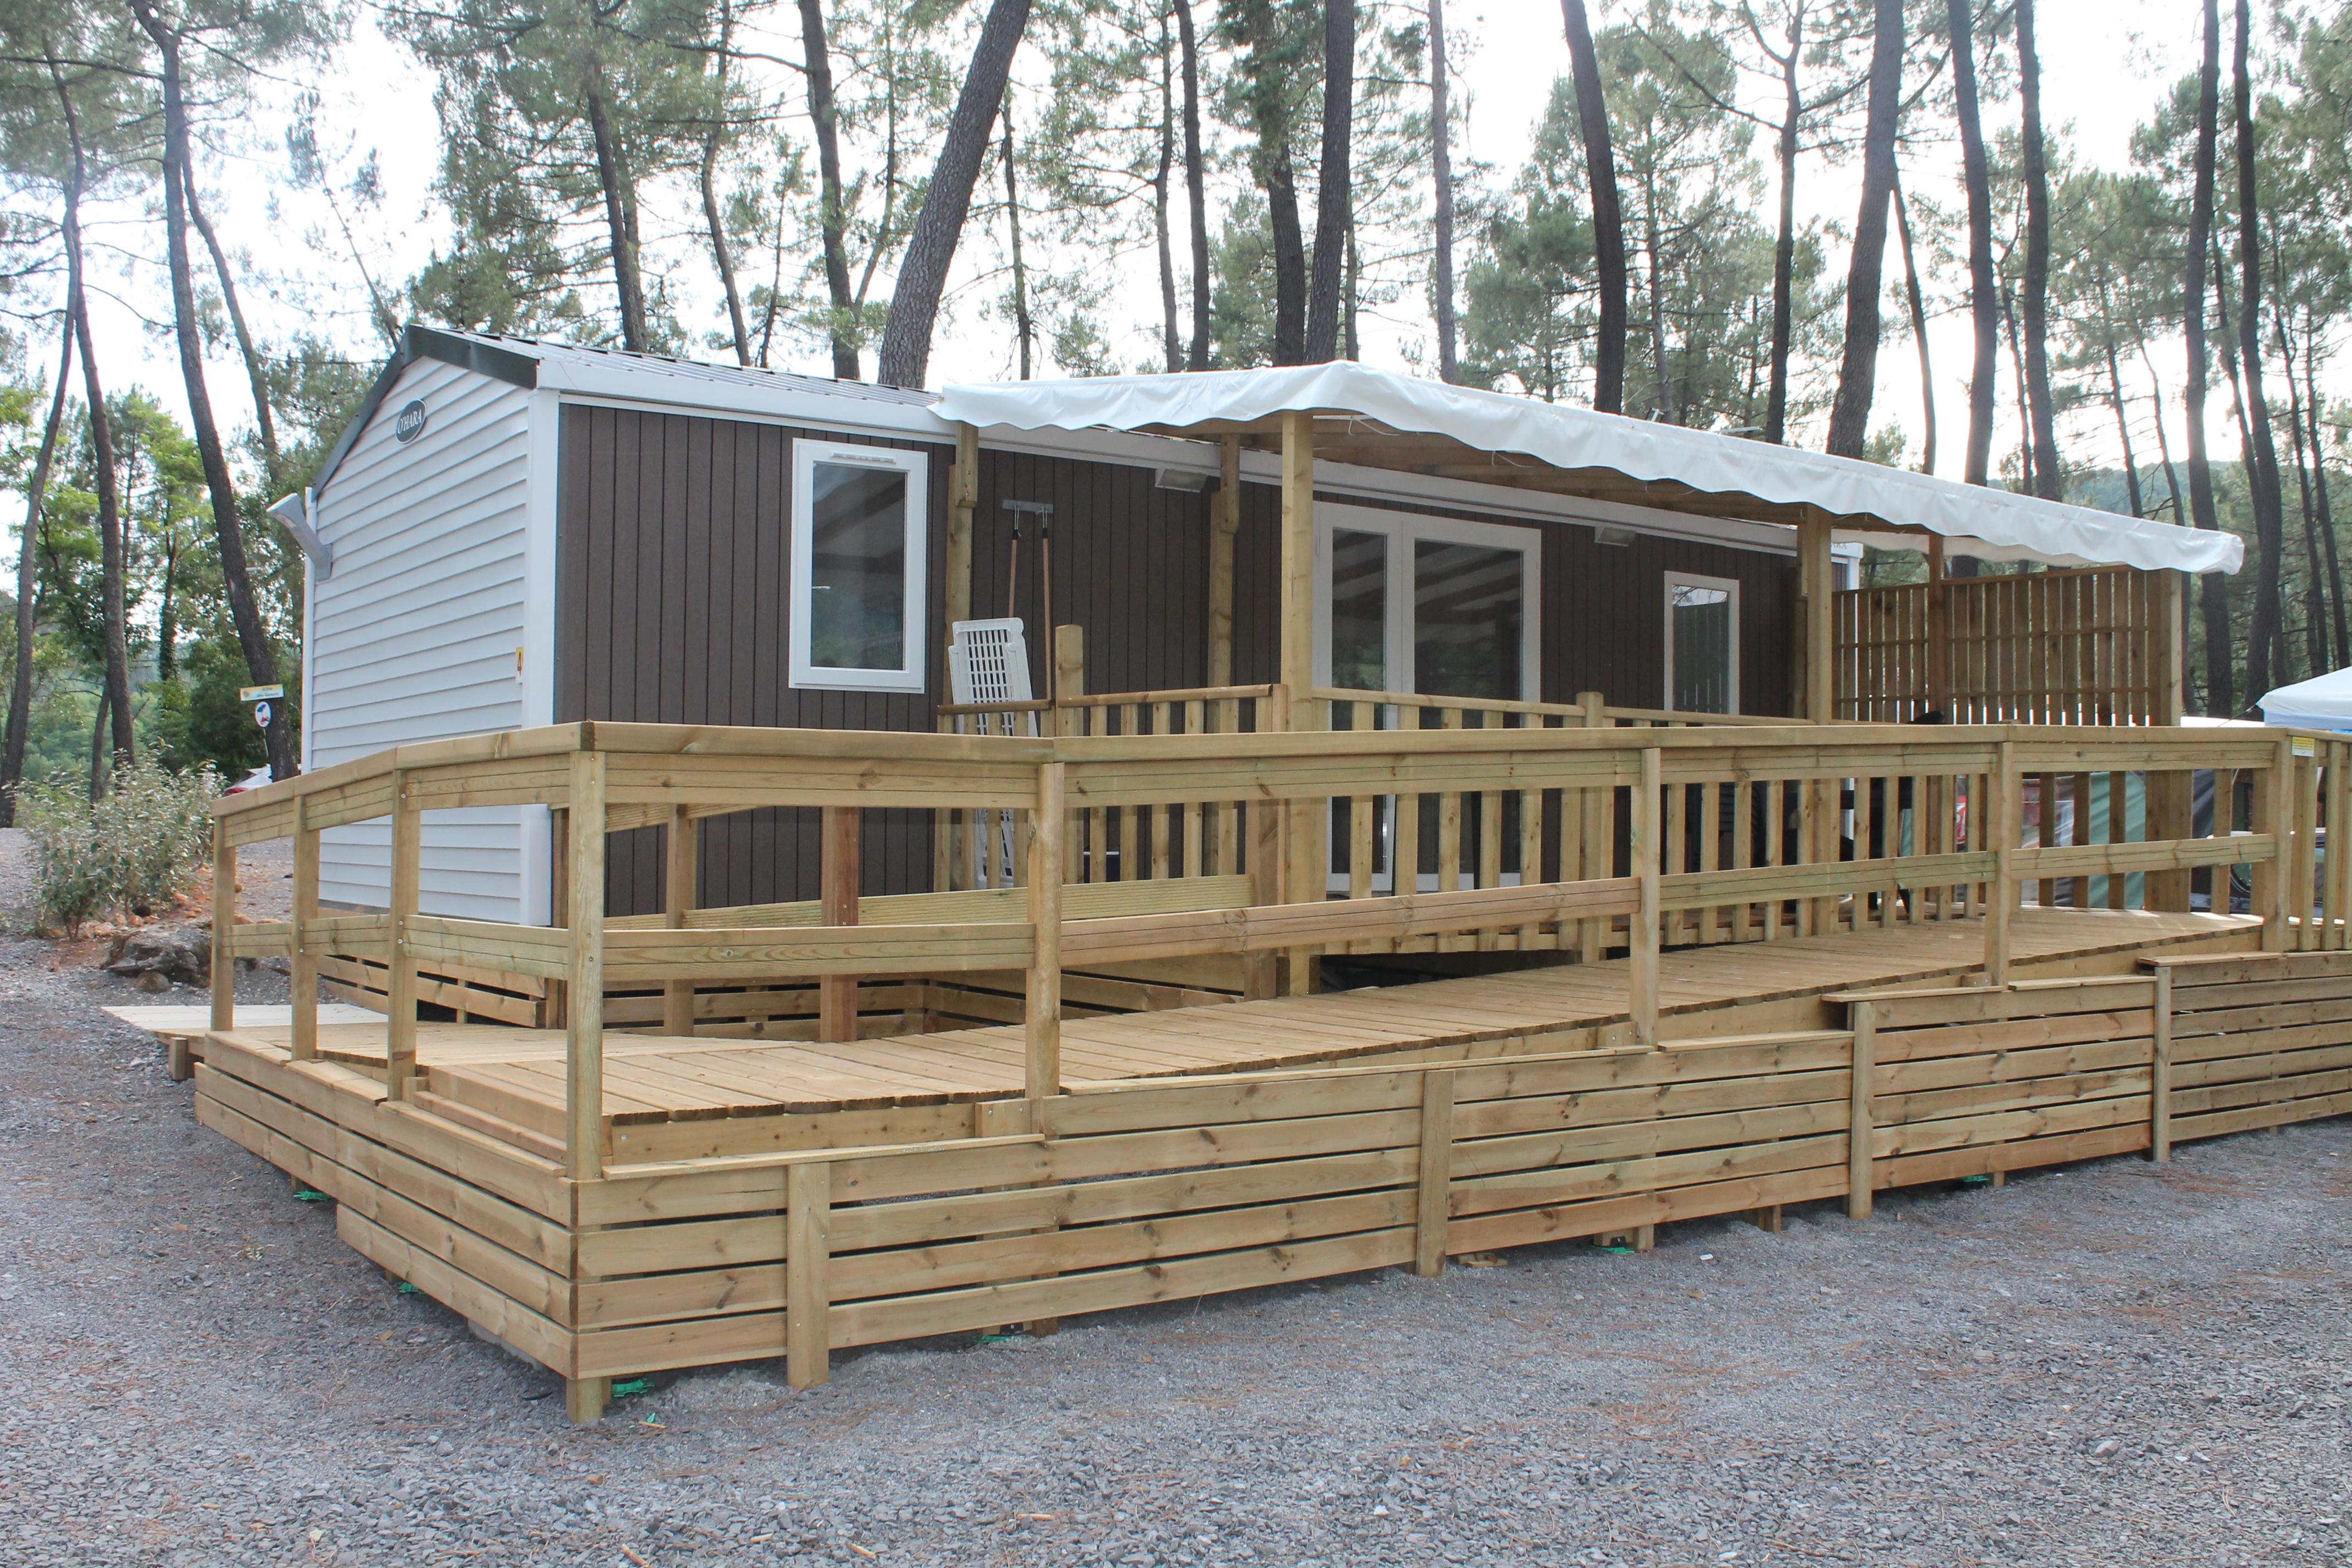 Huuraccommodatie - Chalet Chataignier - 2 Kamers - Camping Bois Simonet